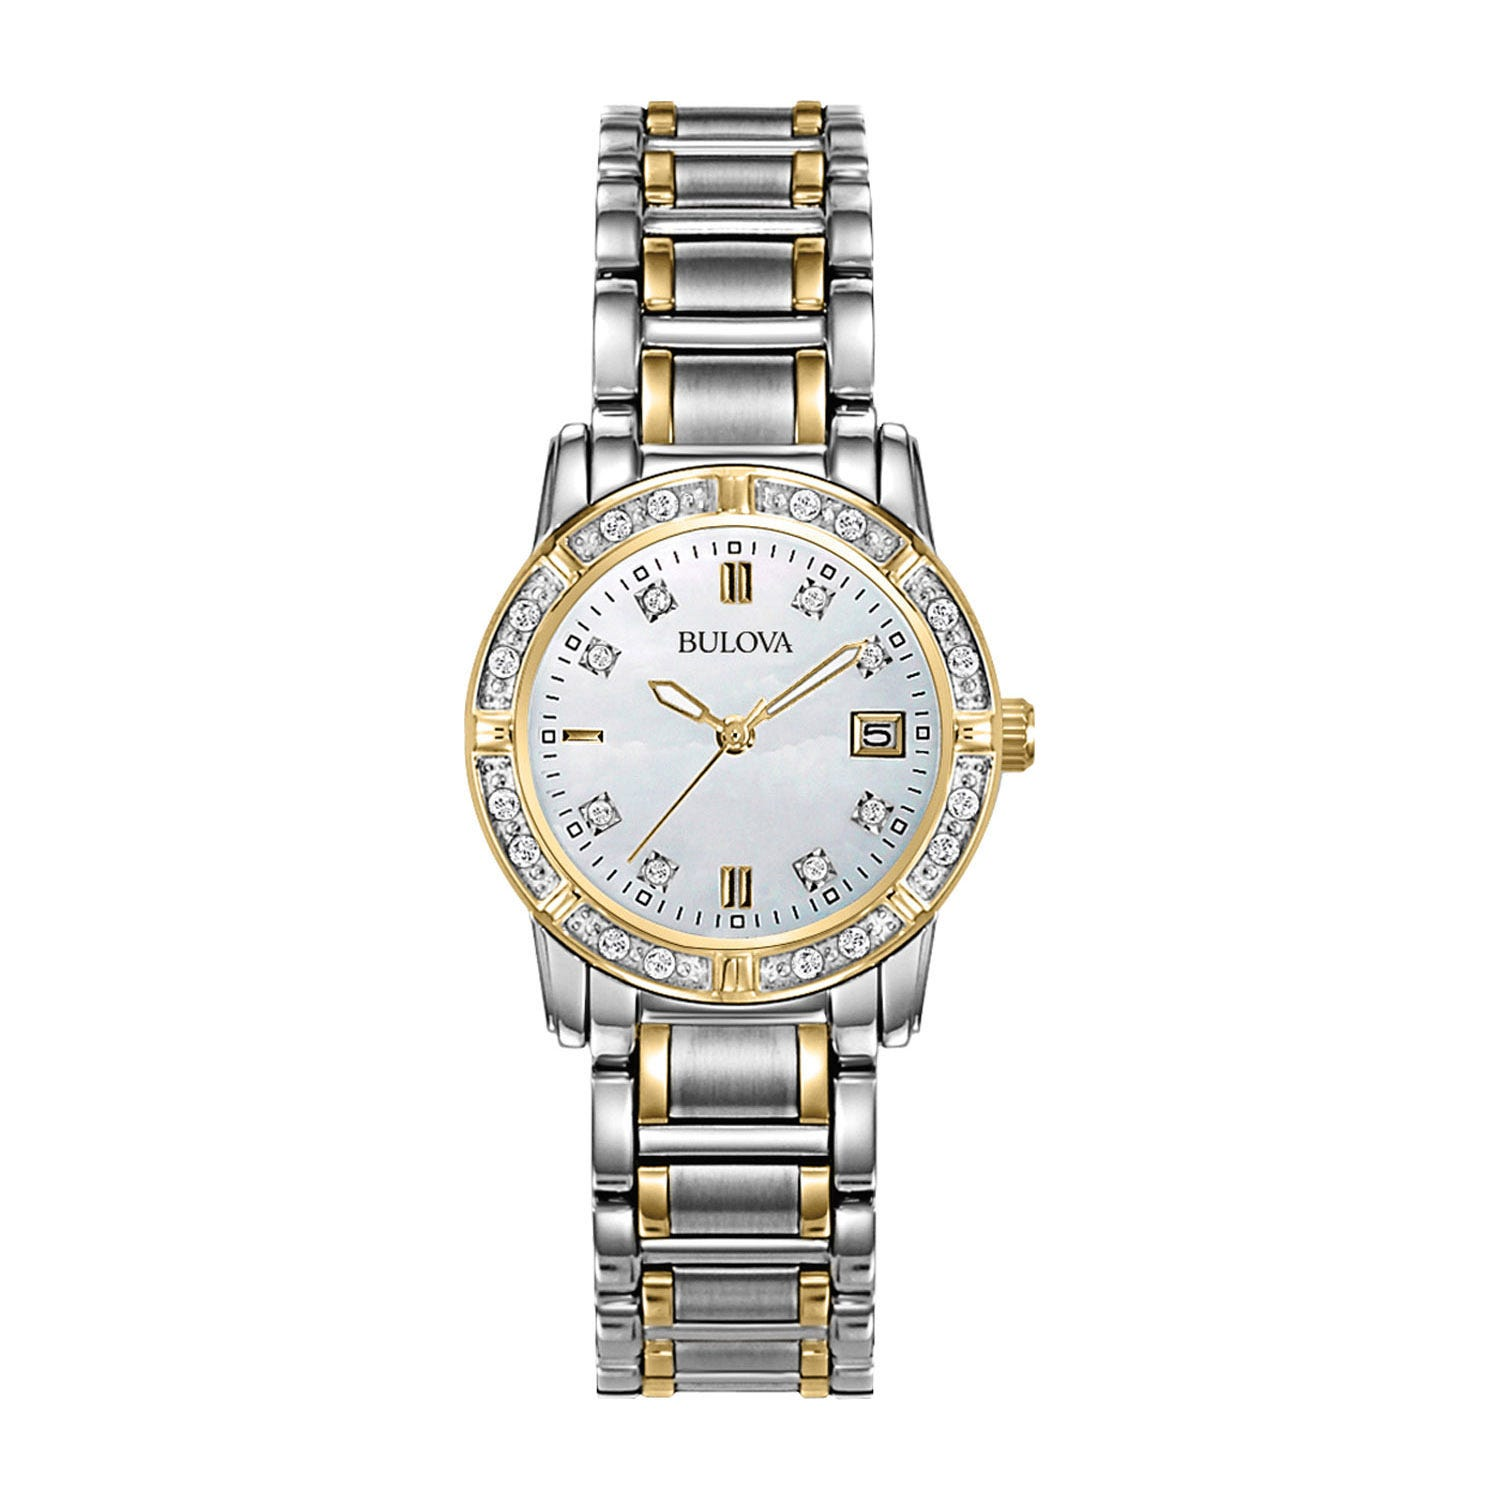 Bulova Diamonds ladies' diamond-dot and bezel gold-tone and stainless steel watch